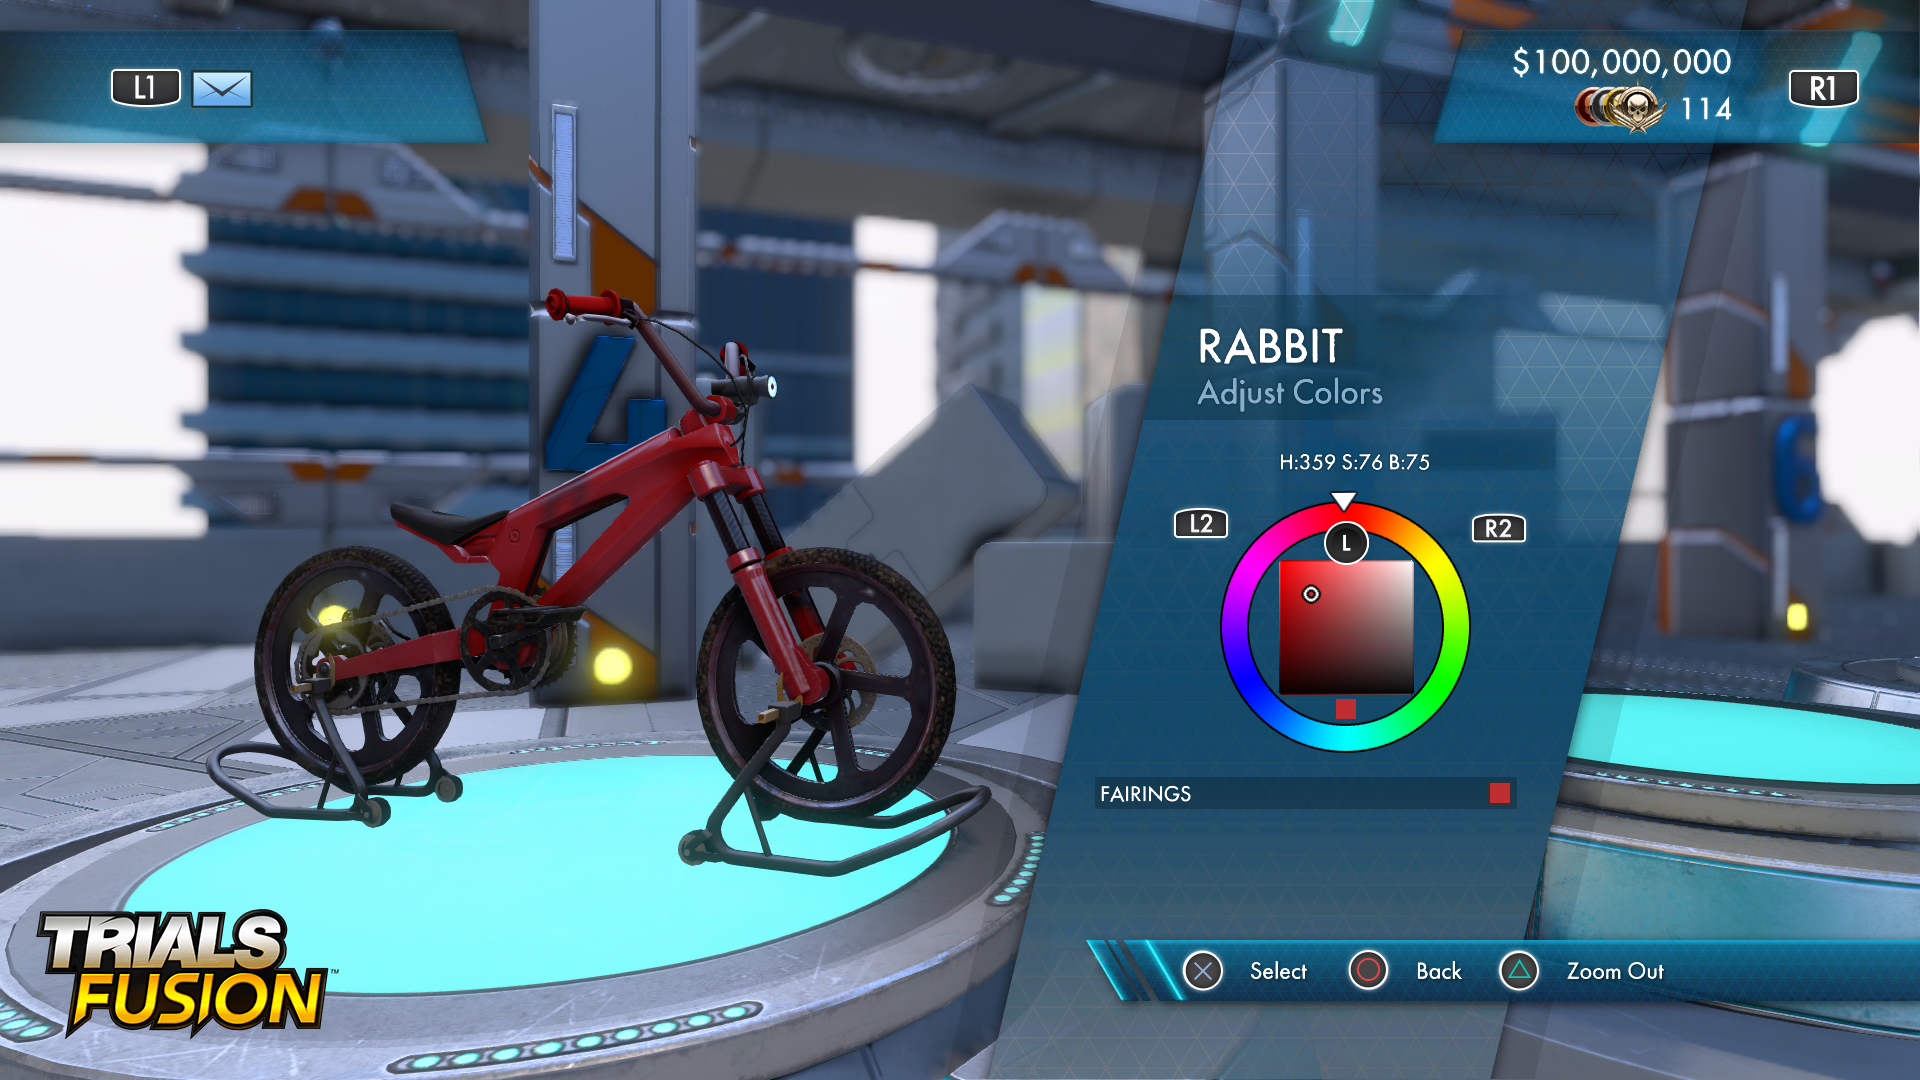 trials_fusion_garage_rabbit_ps4